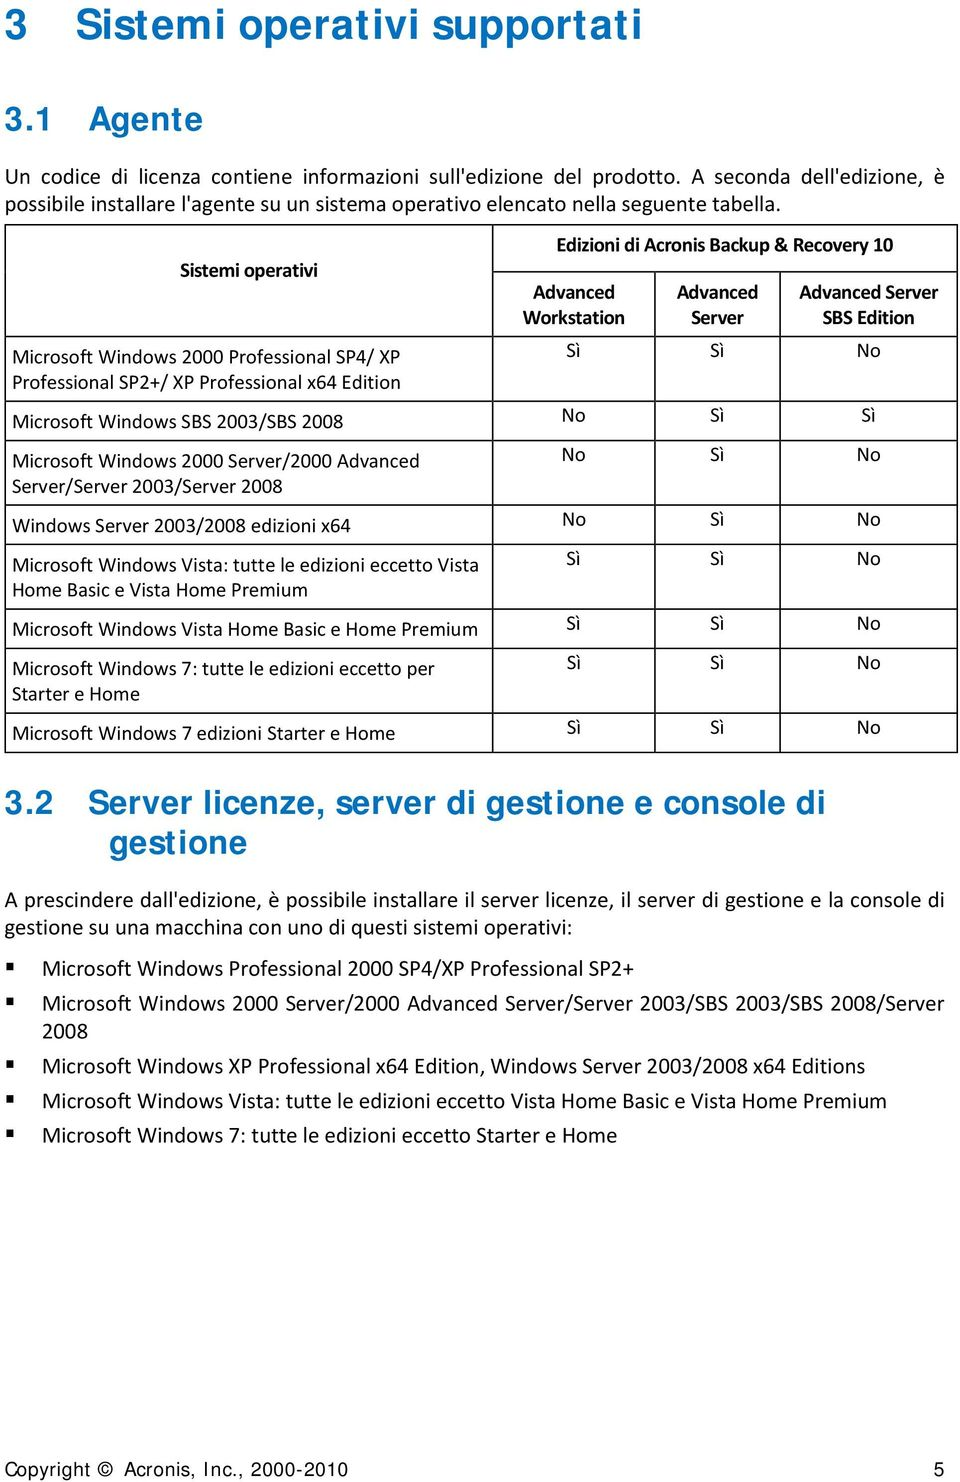 Sistemi operativi Microsoft Windows 2000 Professional SP4/ XP Professional SP2+/ XP Professional x64 Edition Edizioni di Acronis Backup & Recovery 10 Advanced Workstation Advanced Server Advanced